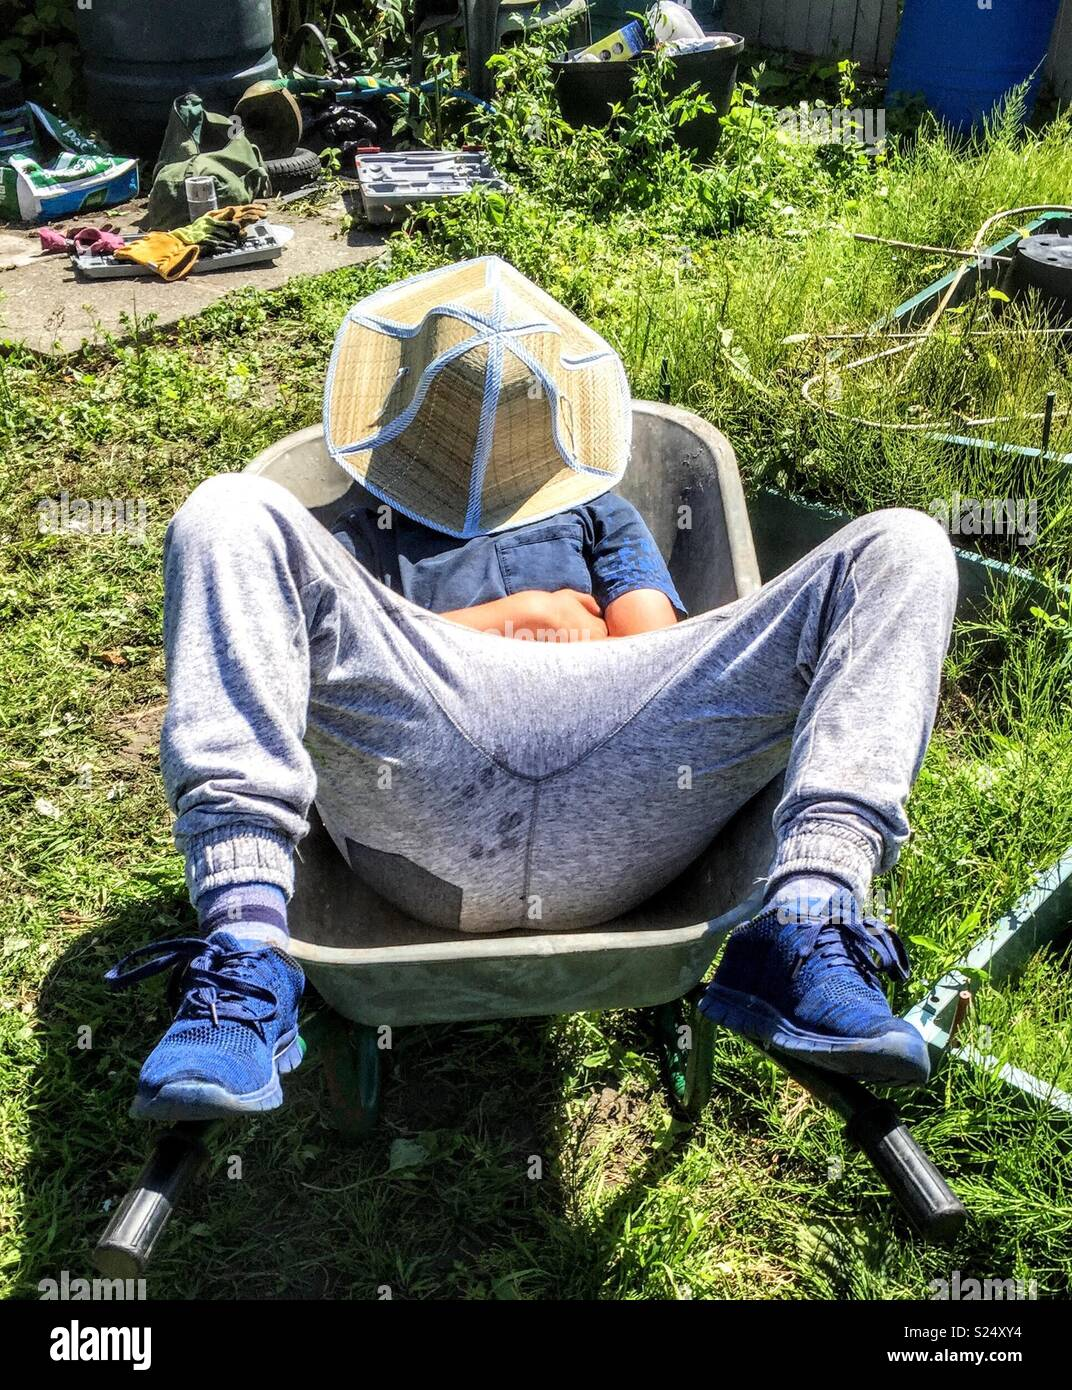 Asleep in a wheelbarrow - Stock Image